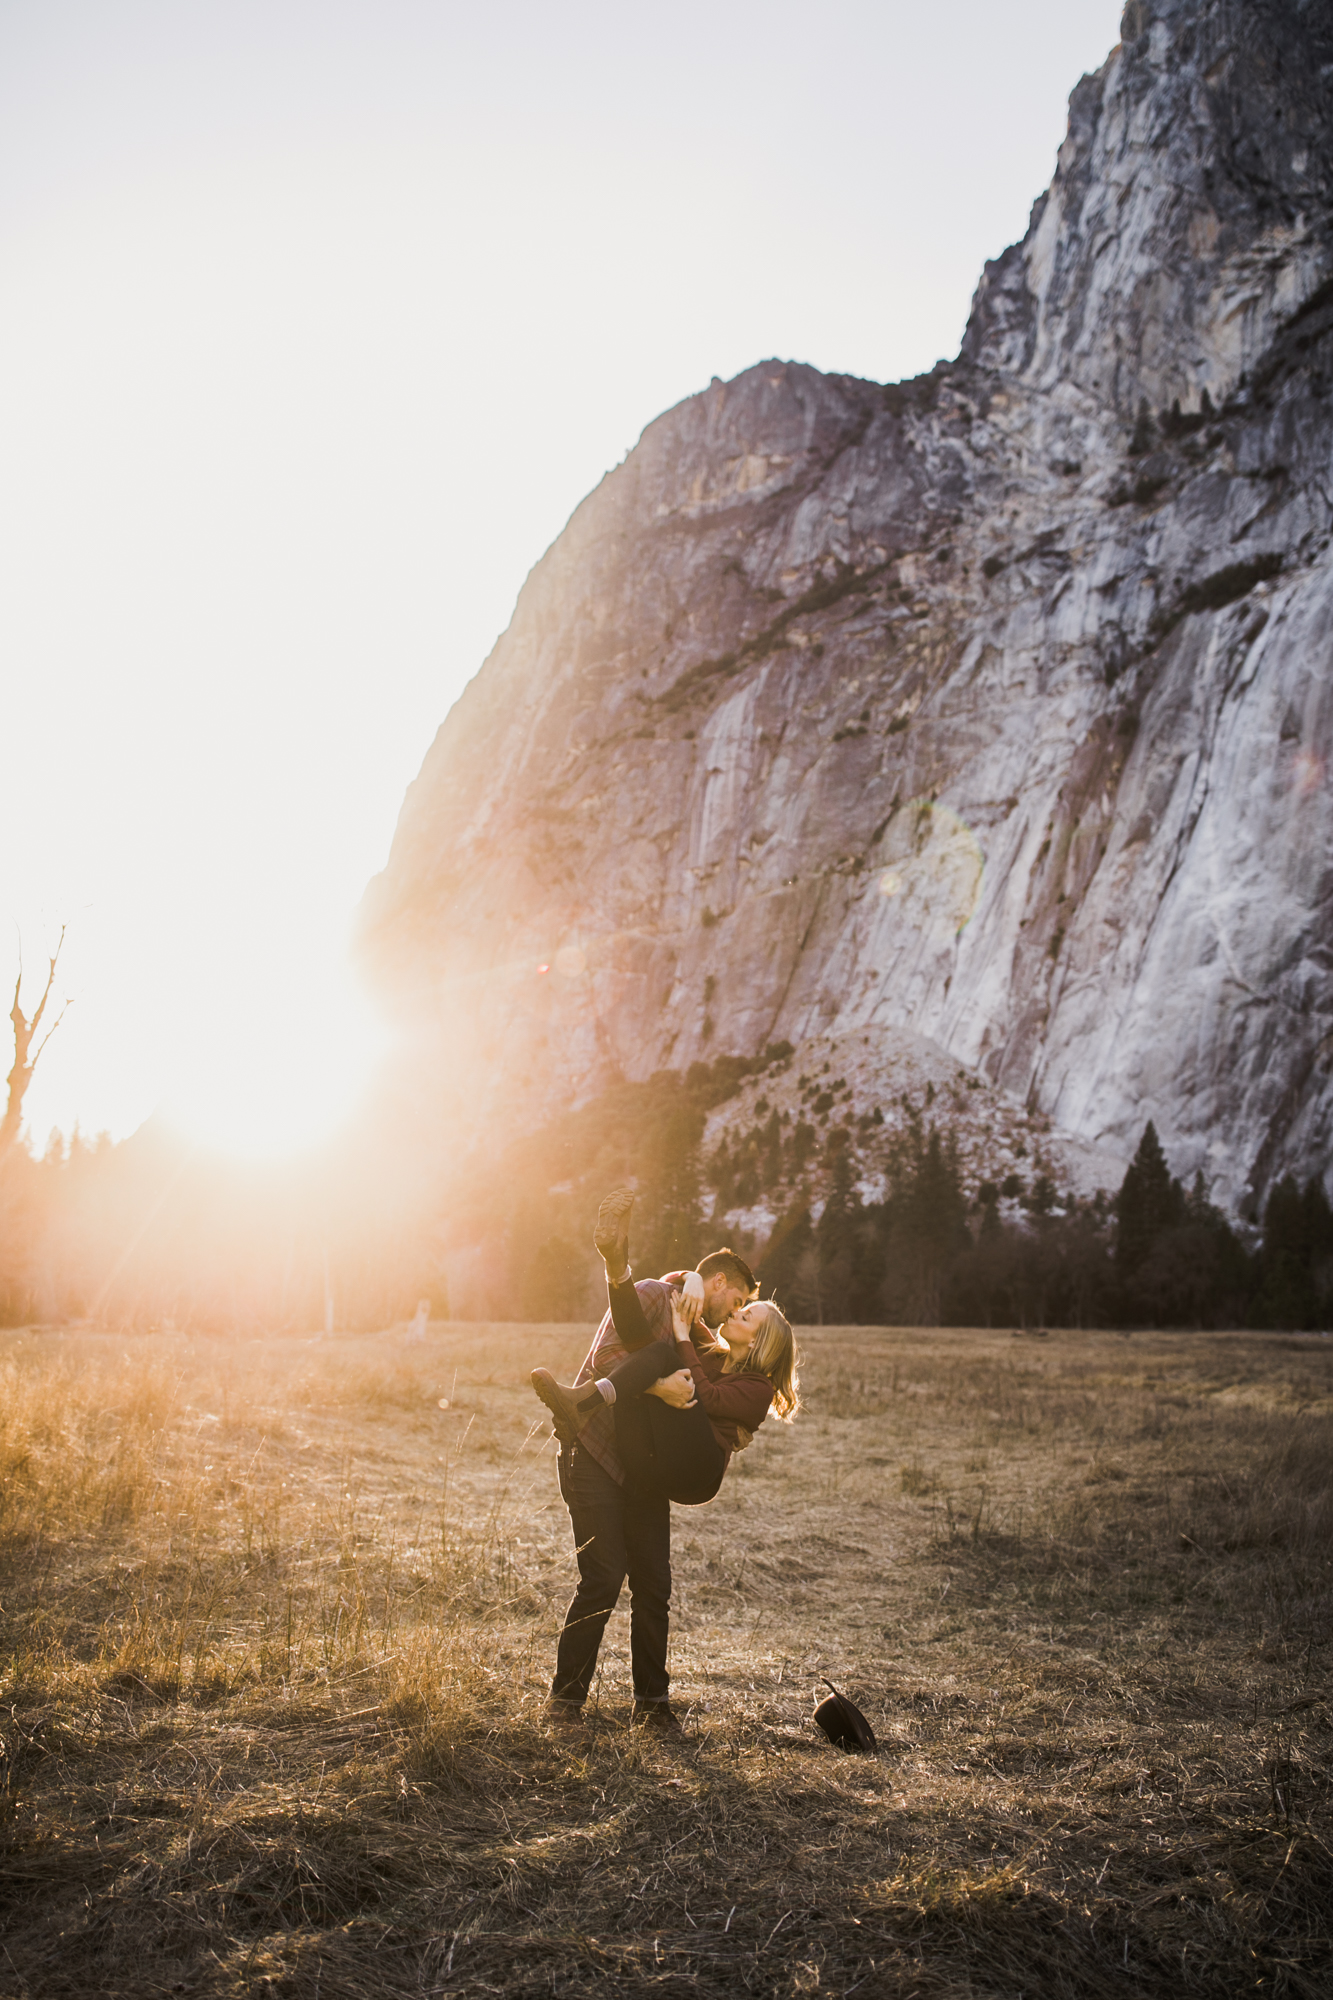 hannah + jason's van life engagement photos in yosemite | national park wedding photographer | the hearnes adventure photography | www.thehearnes.com